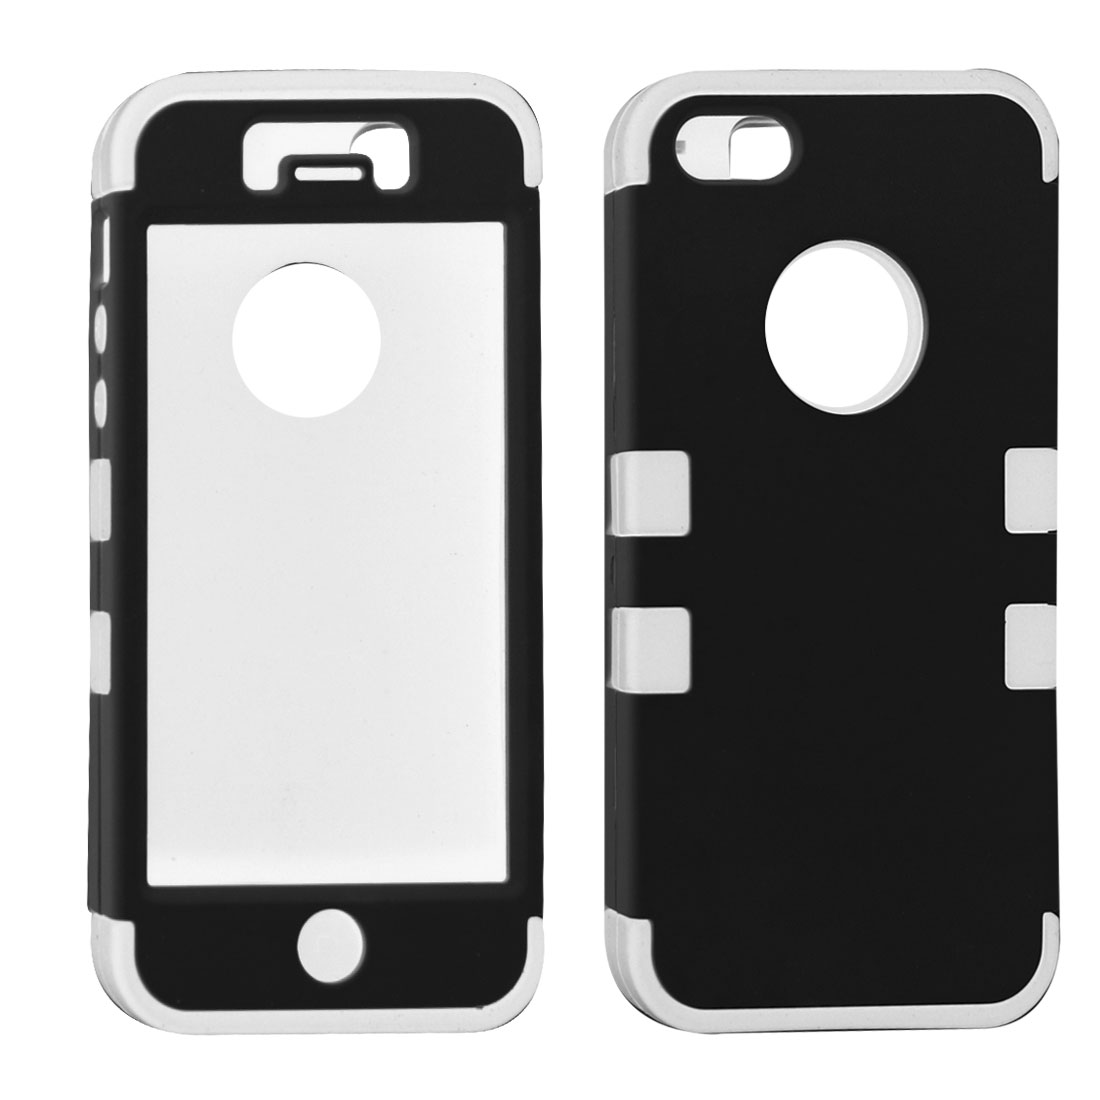 White Black Case Protector Cover for Apple iPhone 5 5G